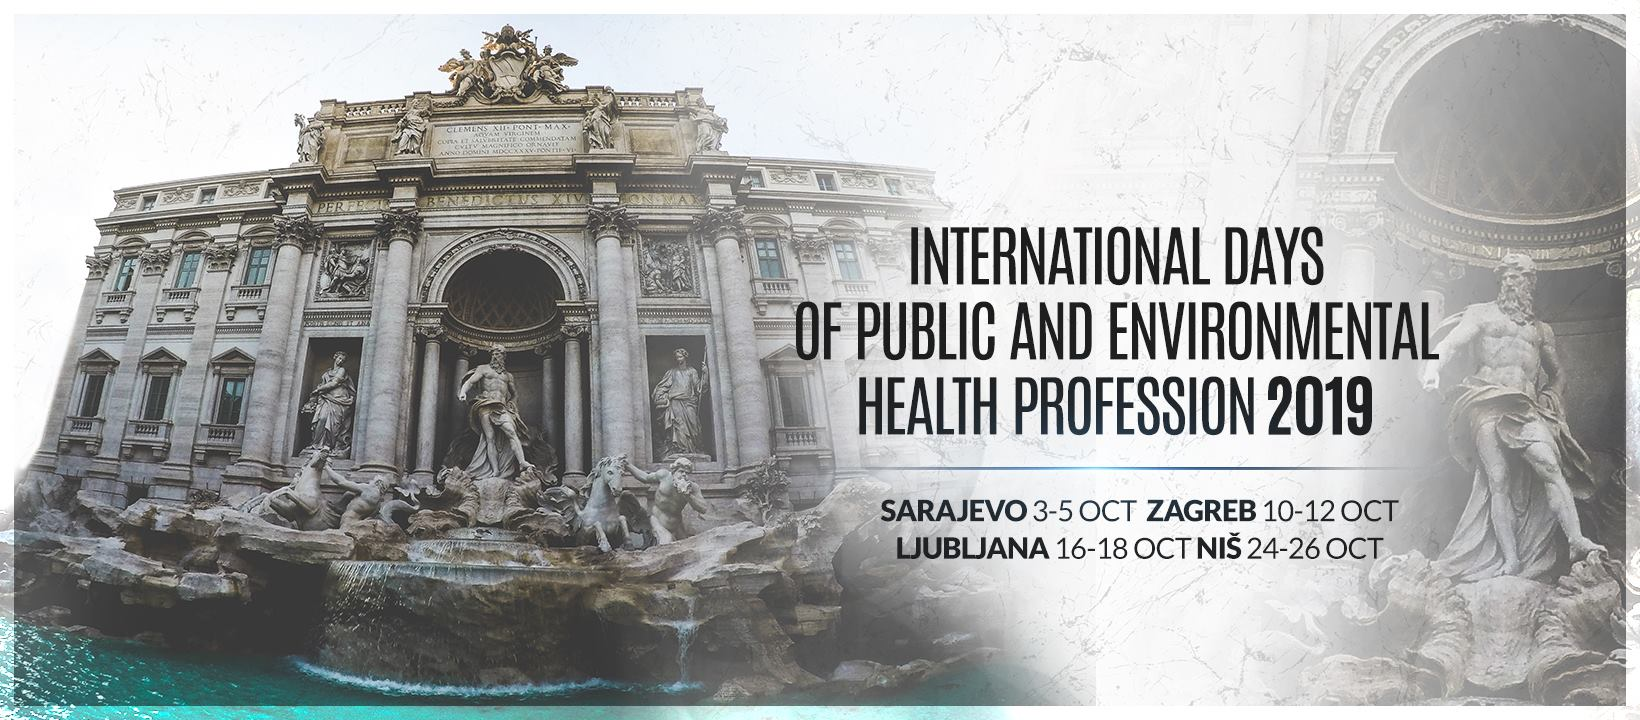 International Days of Environmental Public Health Profession 2019 International Symposium Zagreb, 10.-12. October, 2019